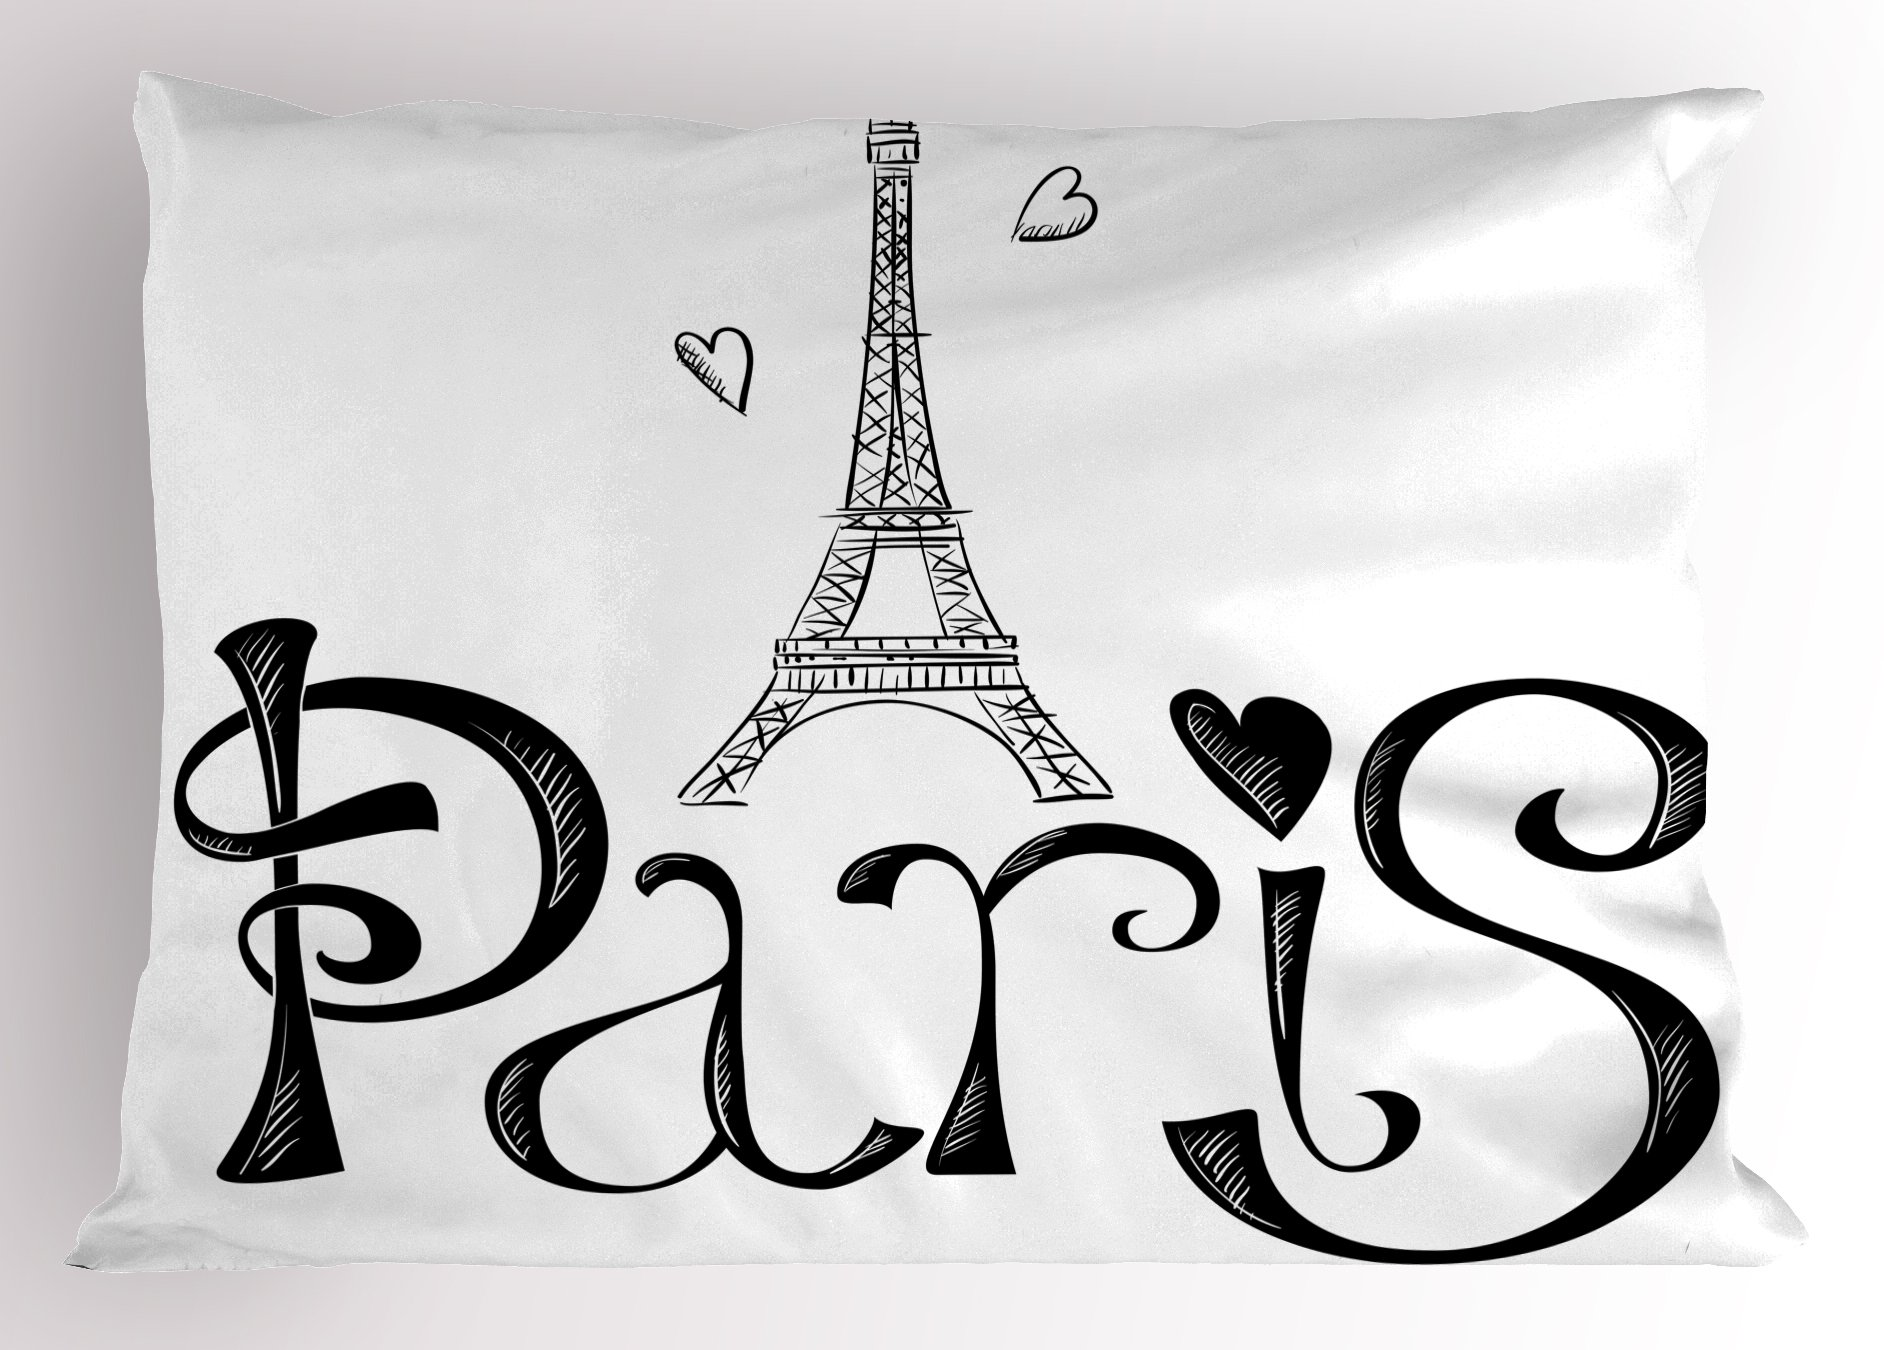 Ambesonne Paris Pillow Sham, Illustration with Eiffel Tower France Heart Shapes Silhouette Vacation Theme Art, Decorative Standard Queen Size Printed Pillowcase, 30 X 20 Inches, Black White